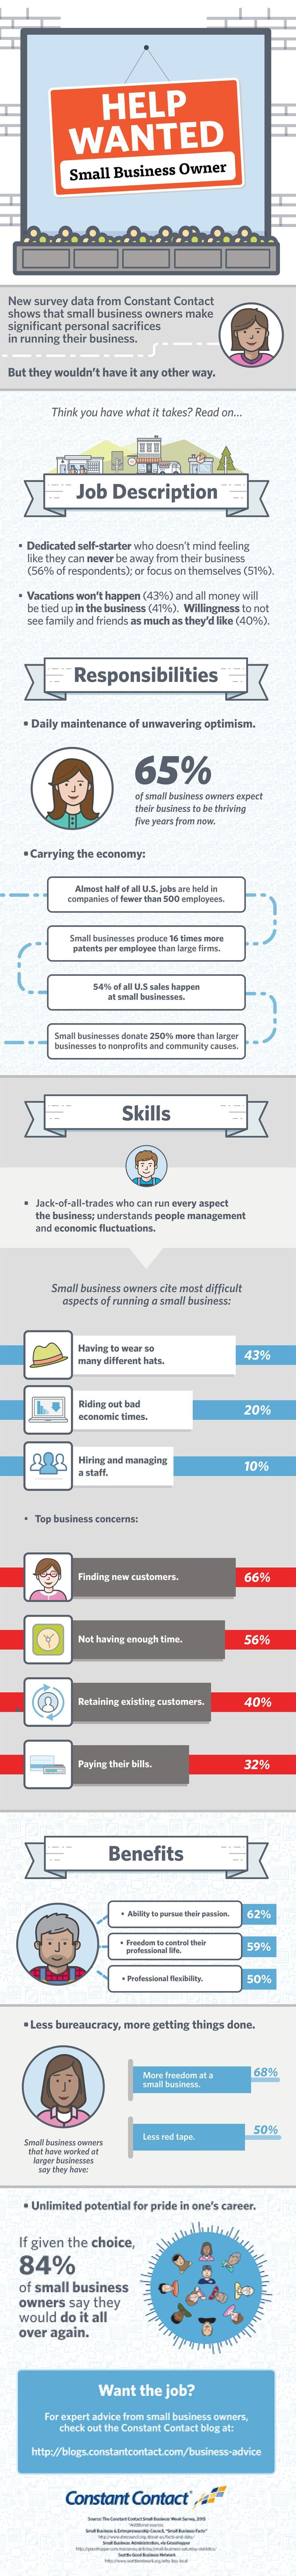 Celebrating National Small Business Week What It Takes to Be a Small-Business Owner (Infographic) Small business success tips #success